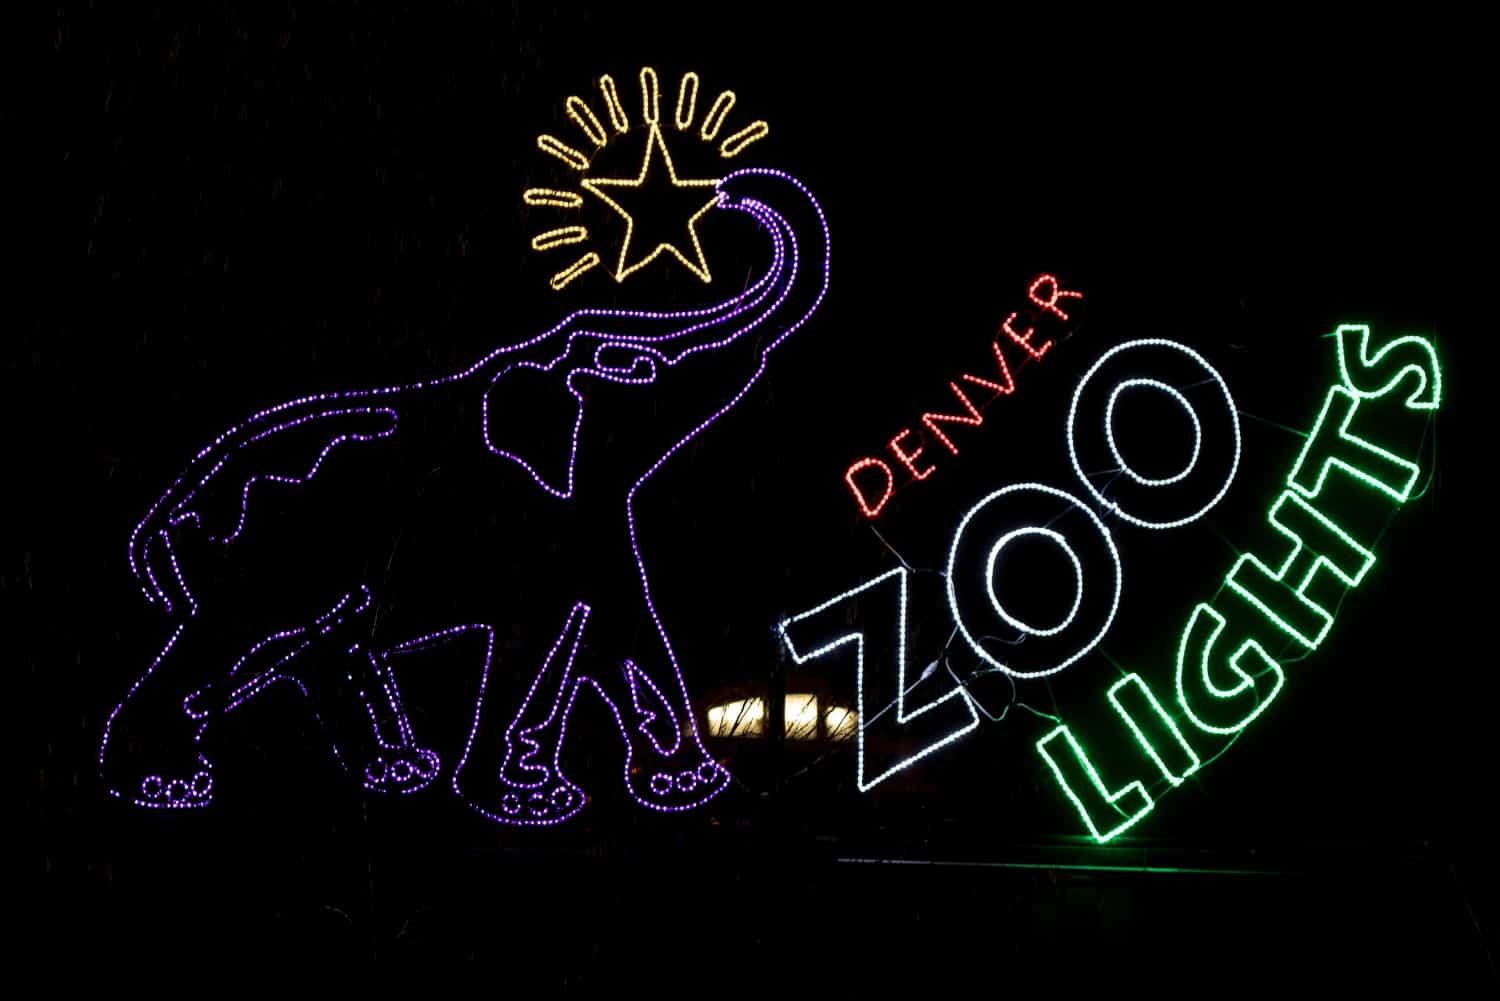 From December 1 To 14, Zoo Lights Is Less Crowded. Admission Is $13 For  Adults (12 To 64), $9 For Children (3 To 11), $11 For Seniors (65+) And  Children ...